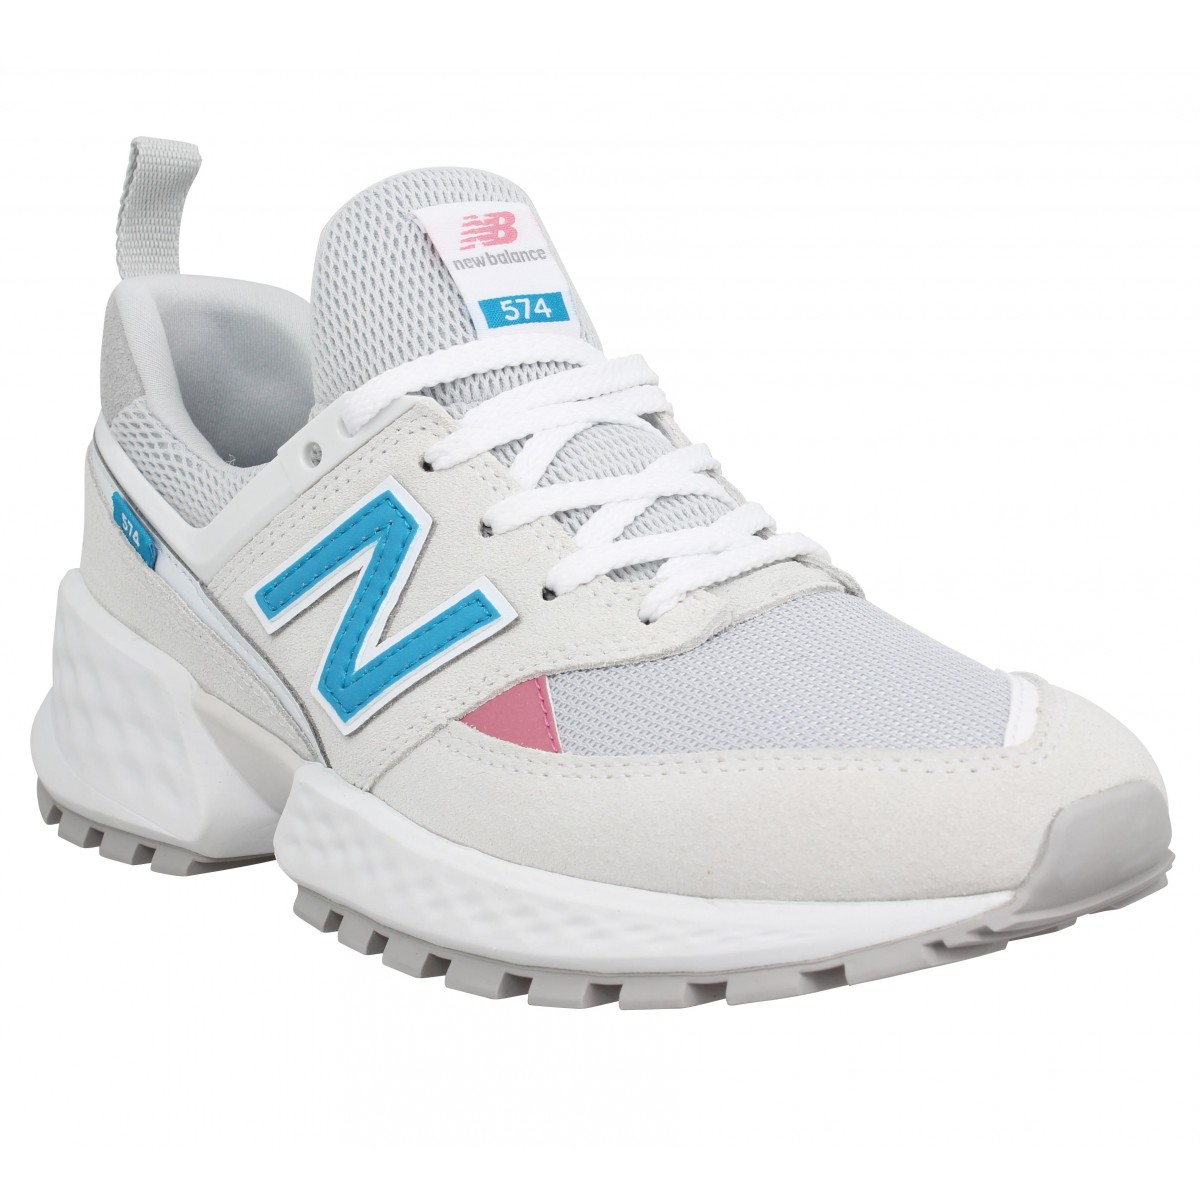 Baskets NEW BALANCE 574S toile Femme Blanc